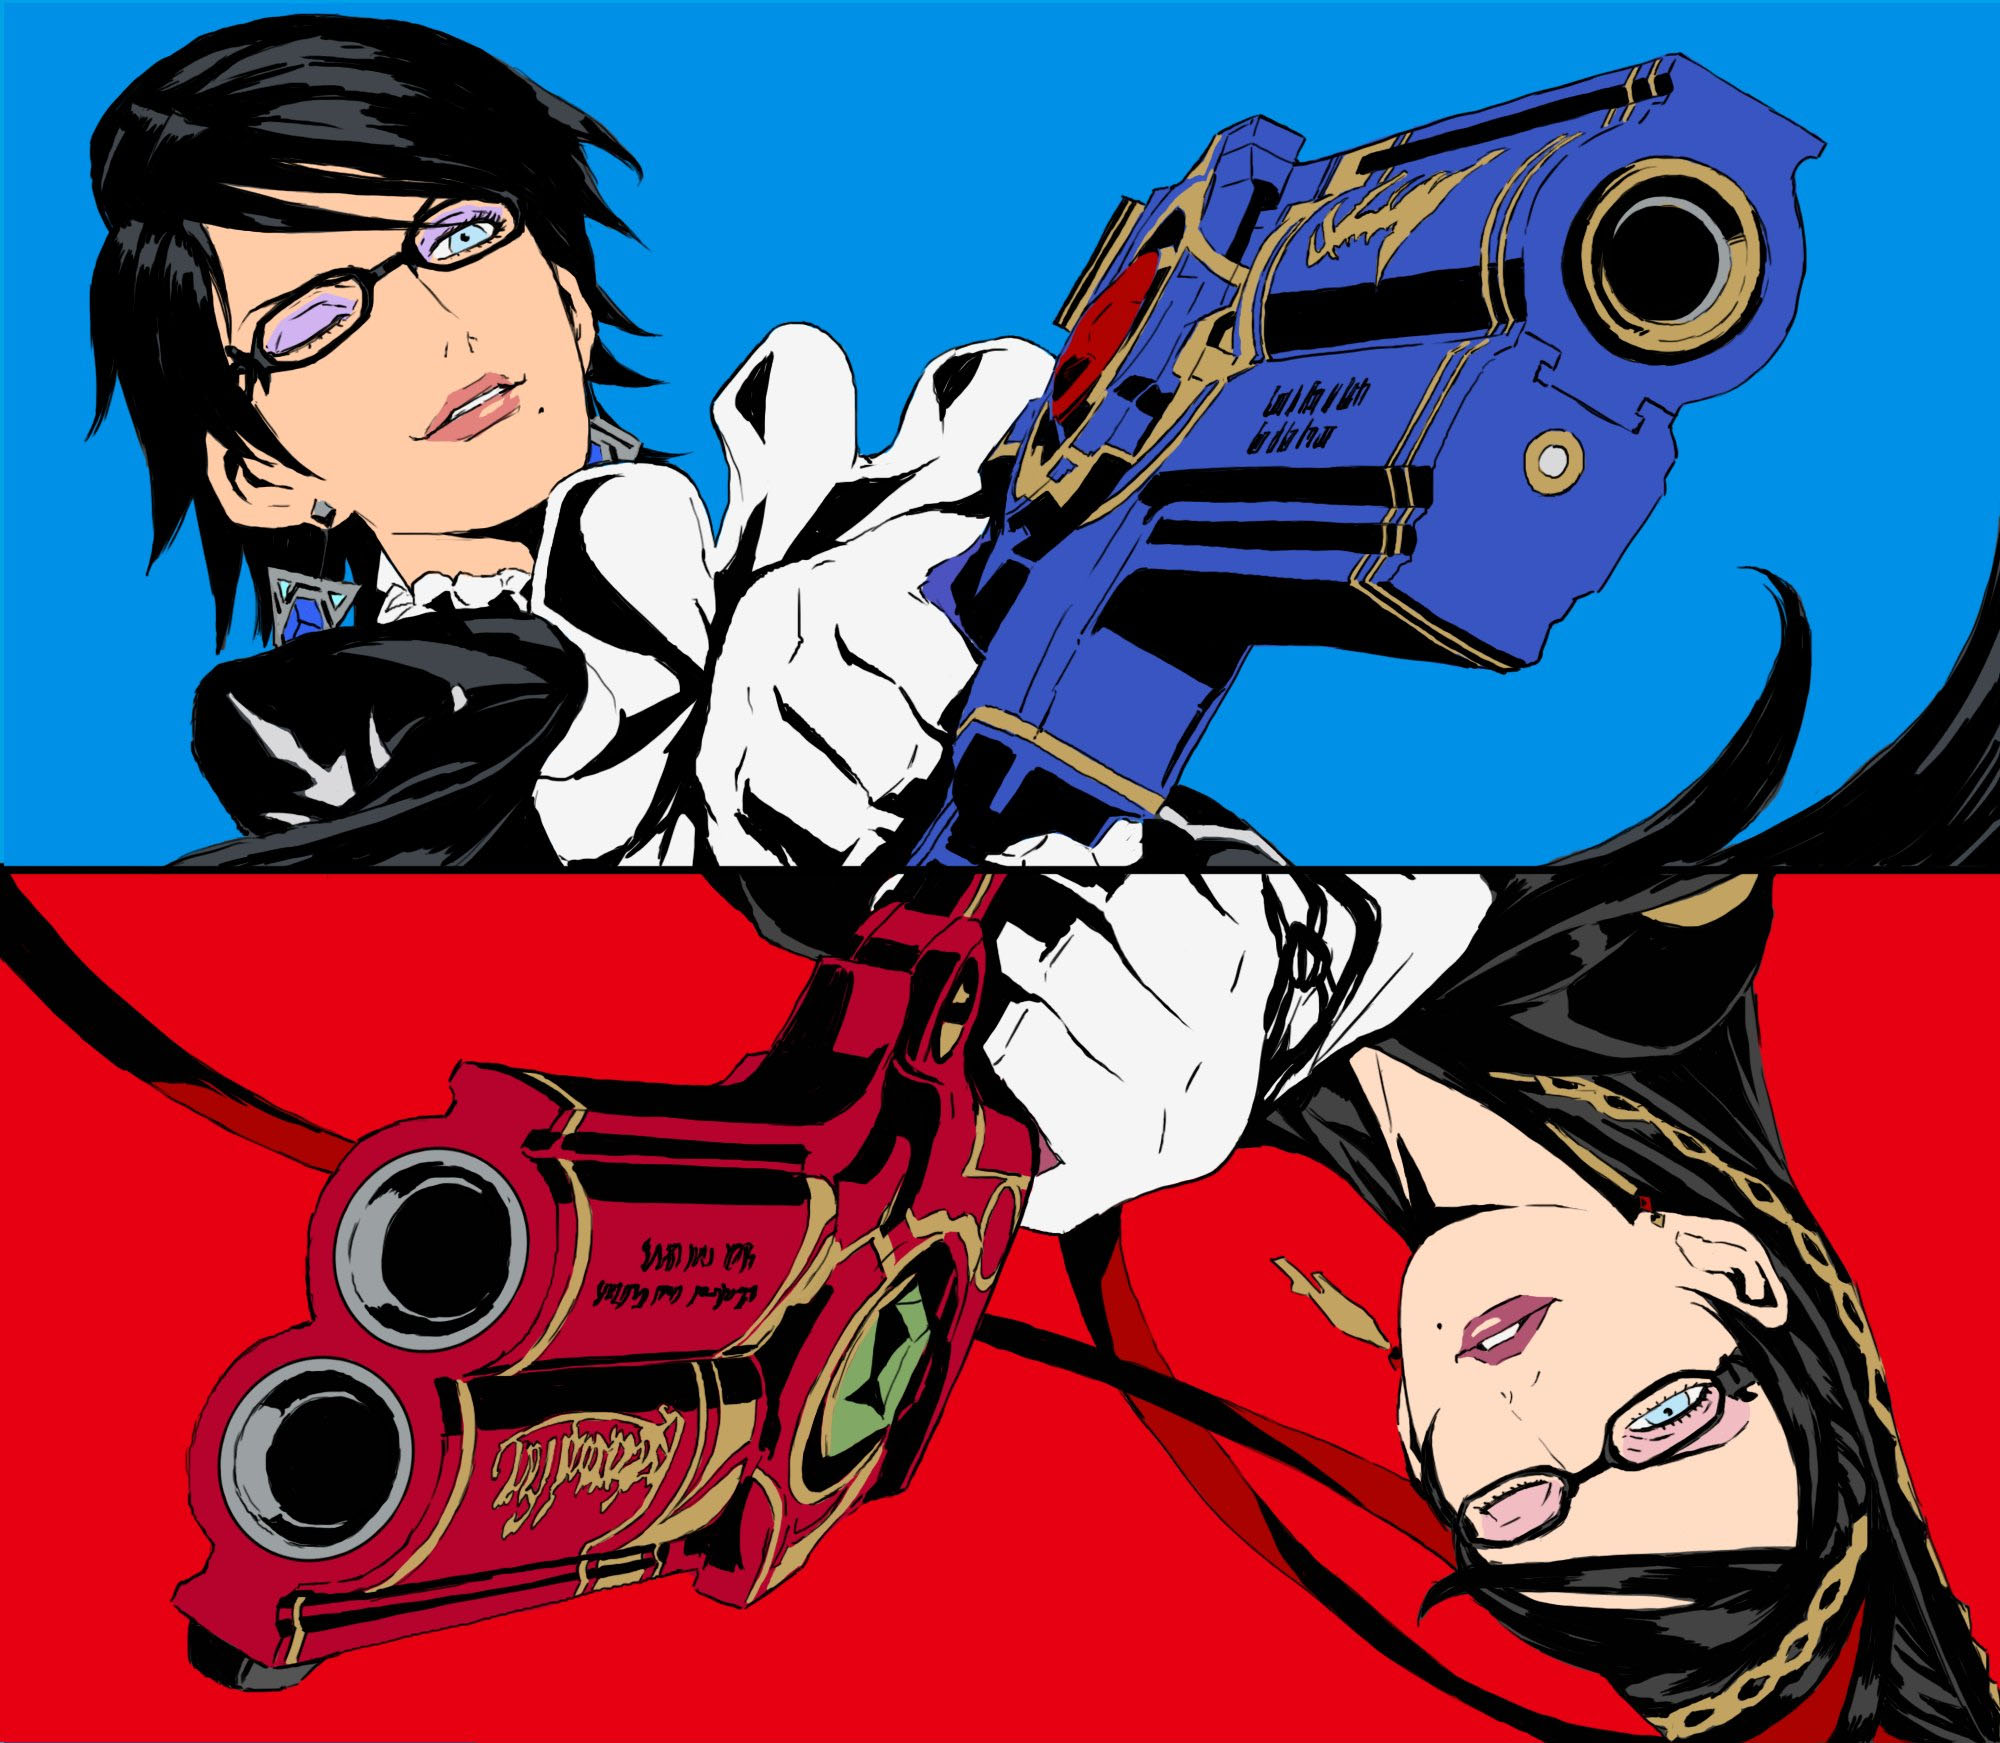 Bayonetta-1-2-Switch_07-03-17.jpg